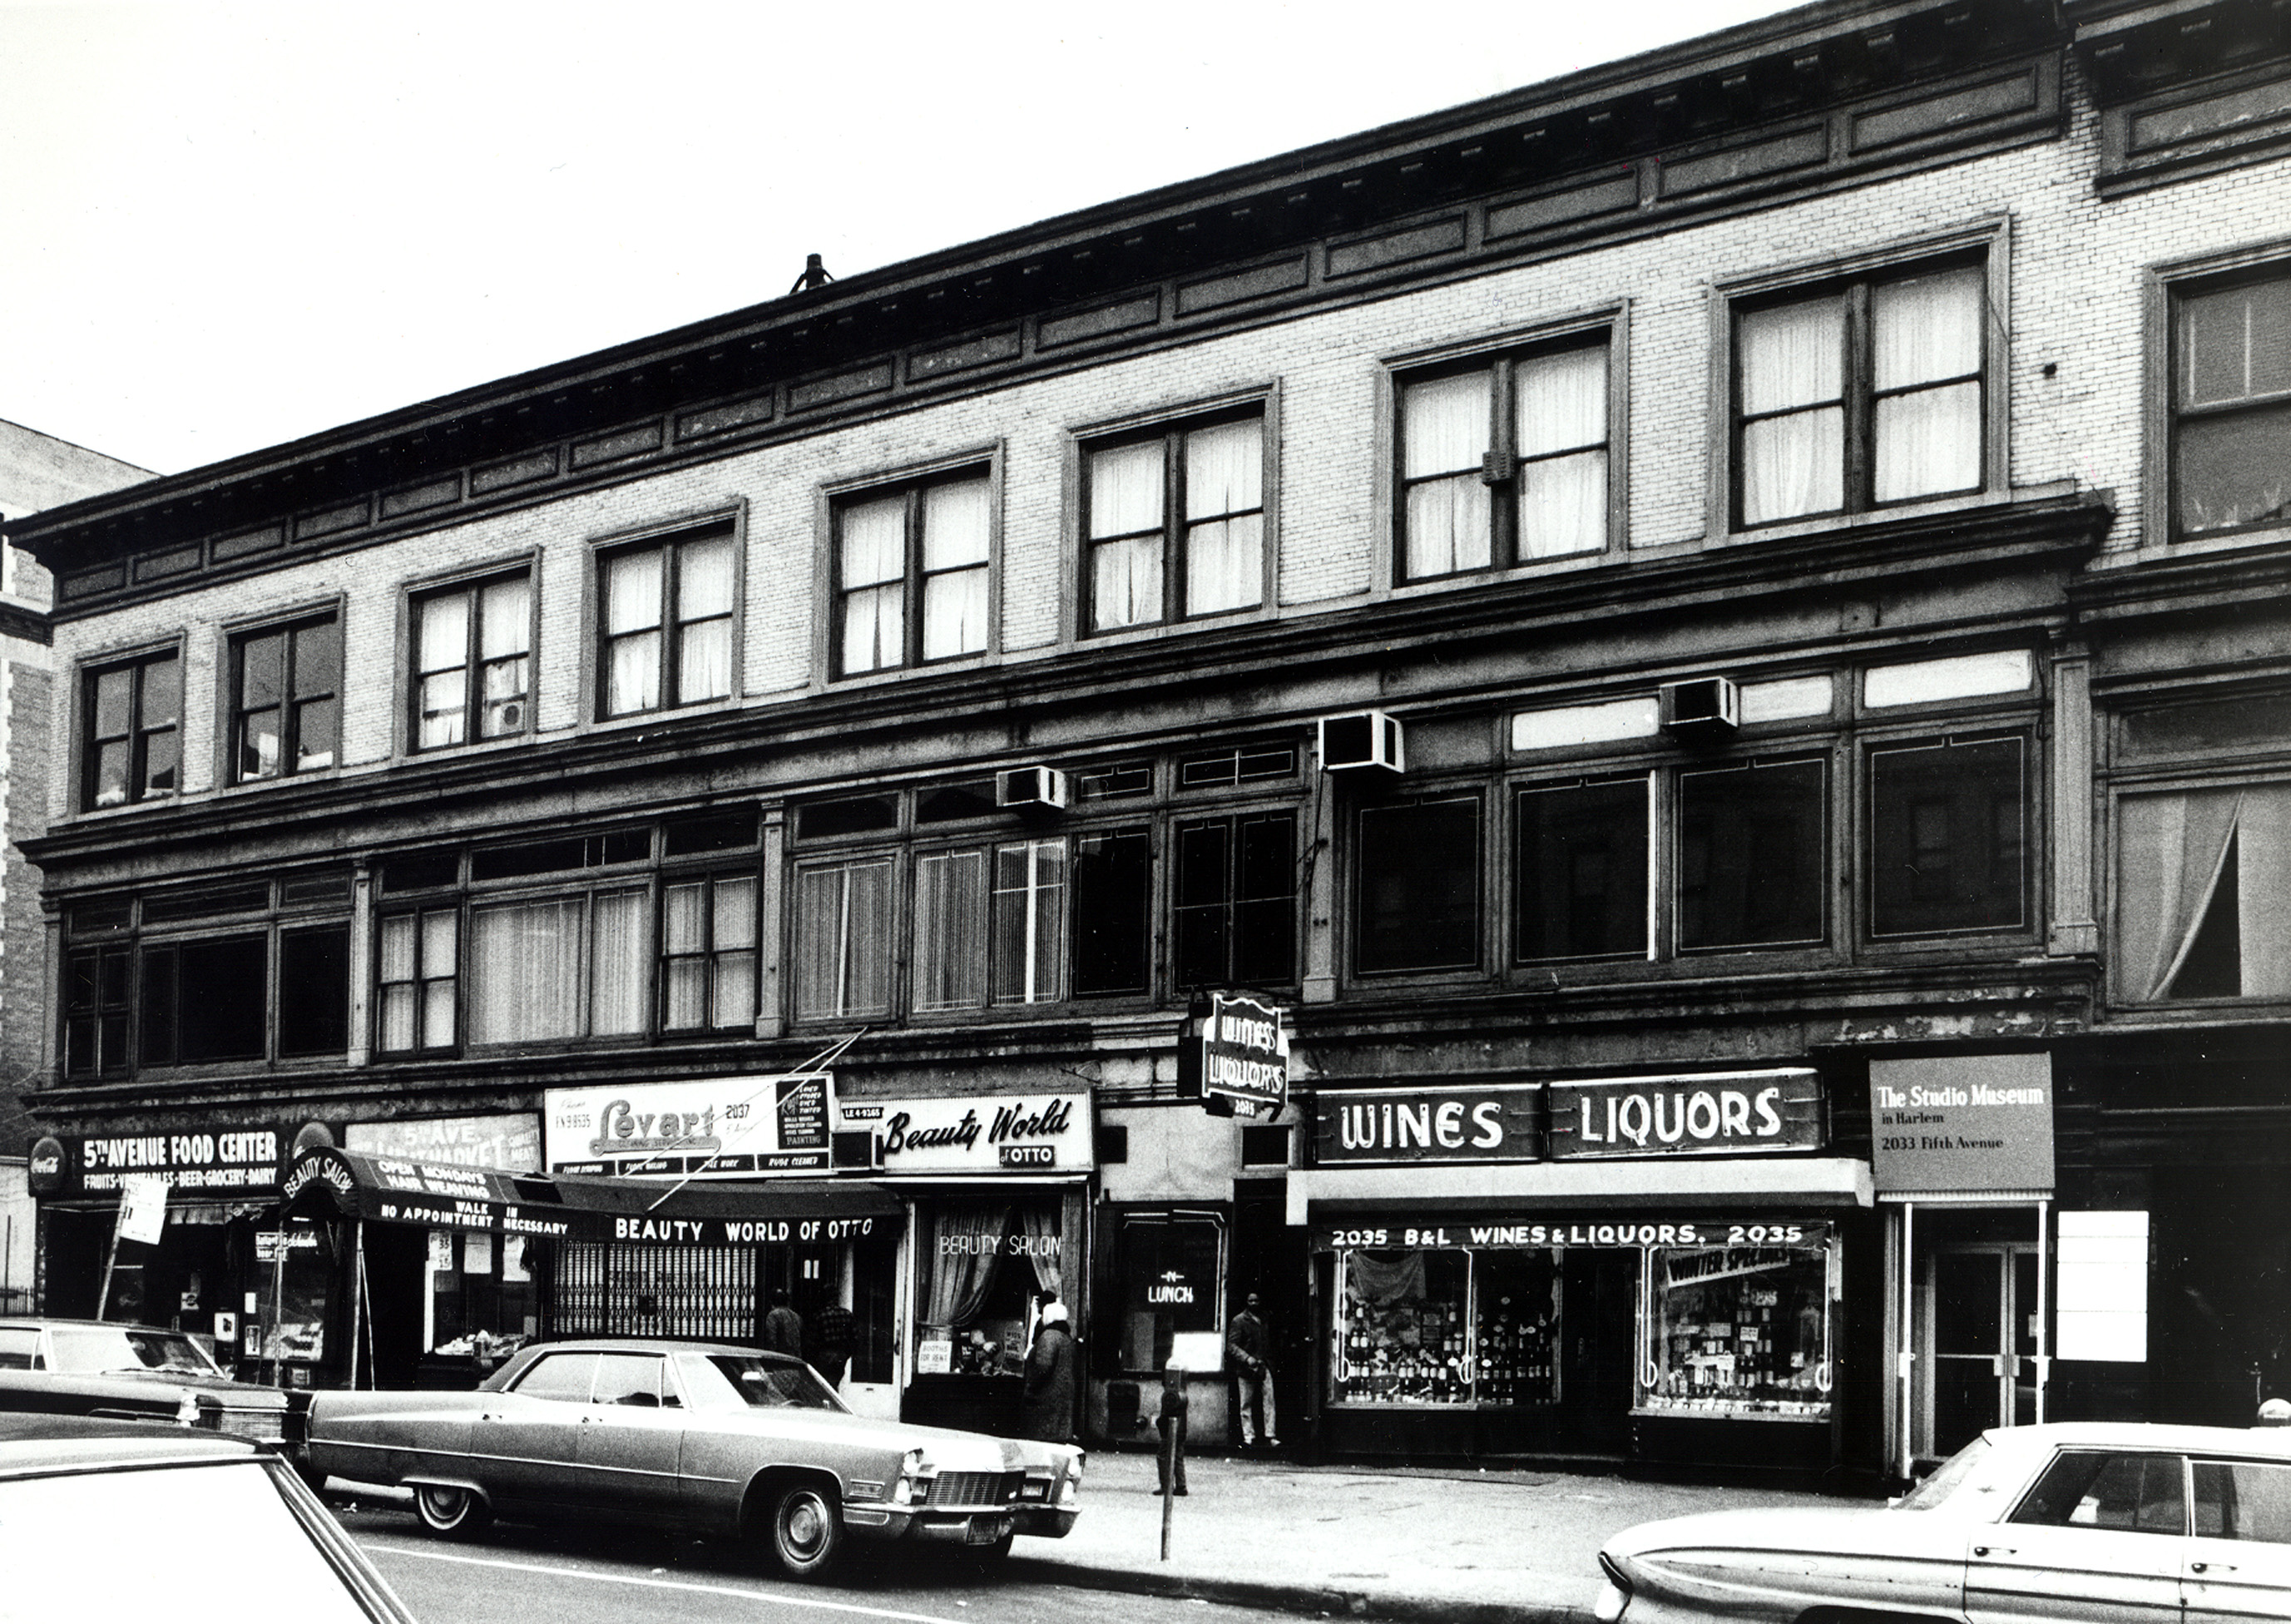 A black and white photograph of Harlem storefronts and The Studio Museum's first location in the late '60s.